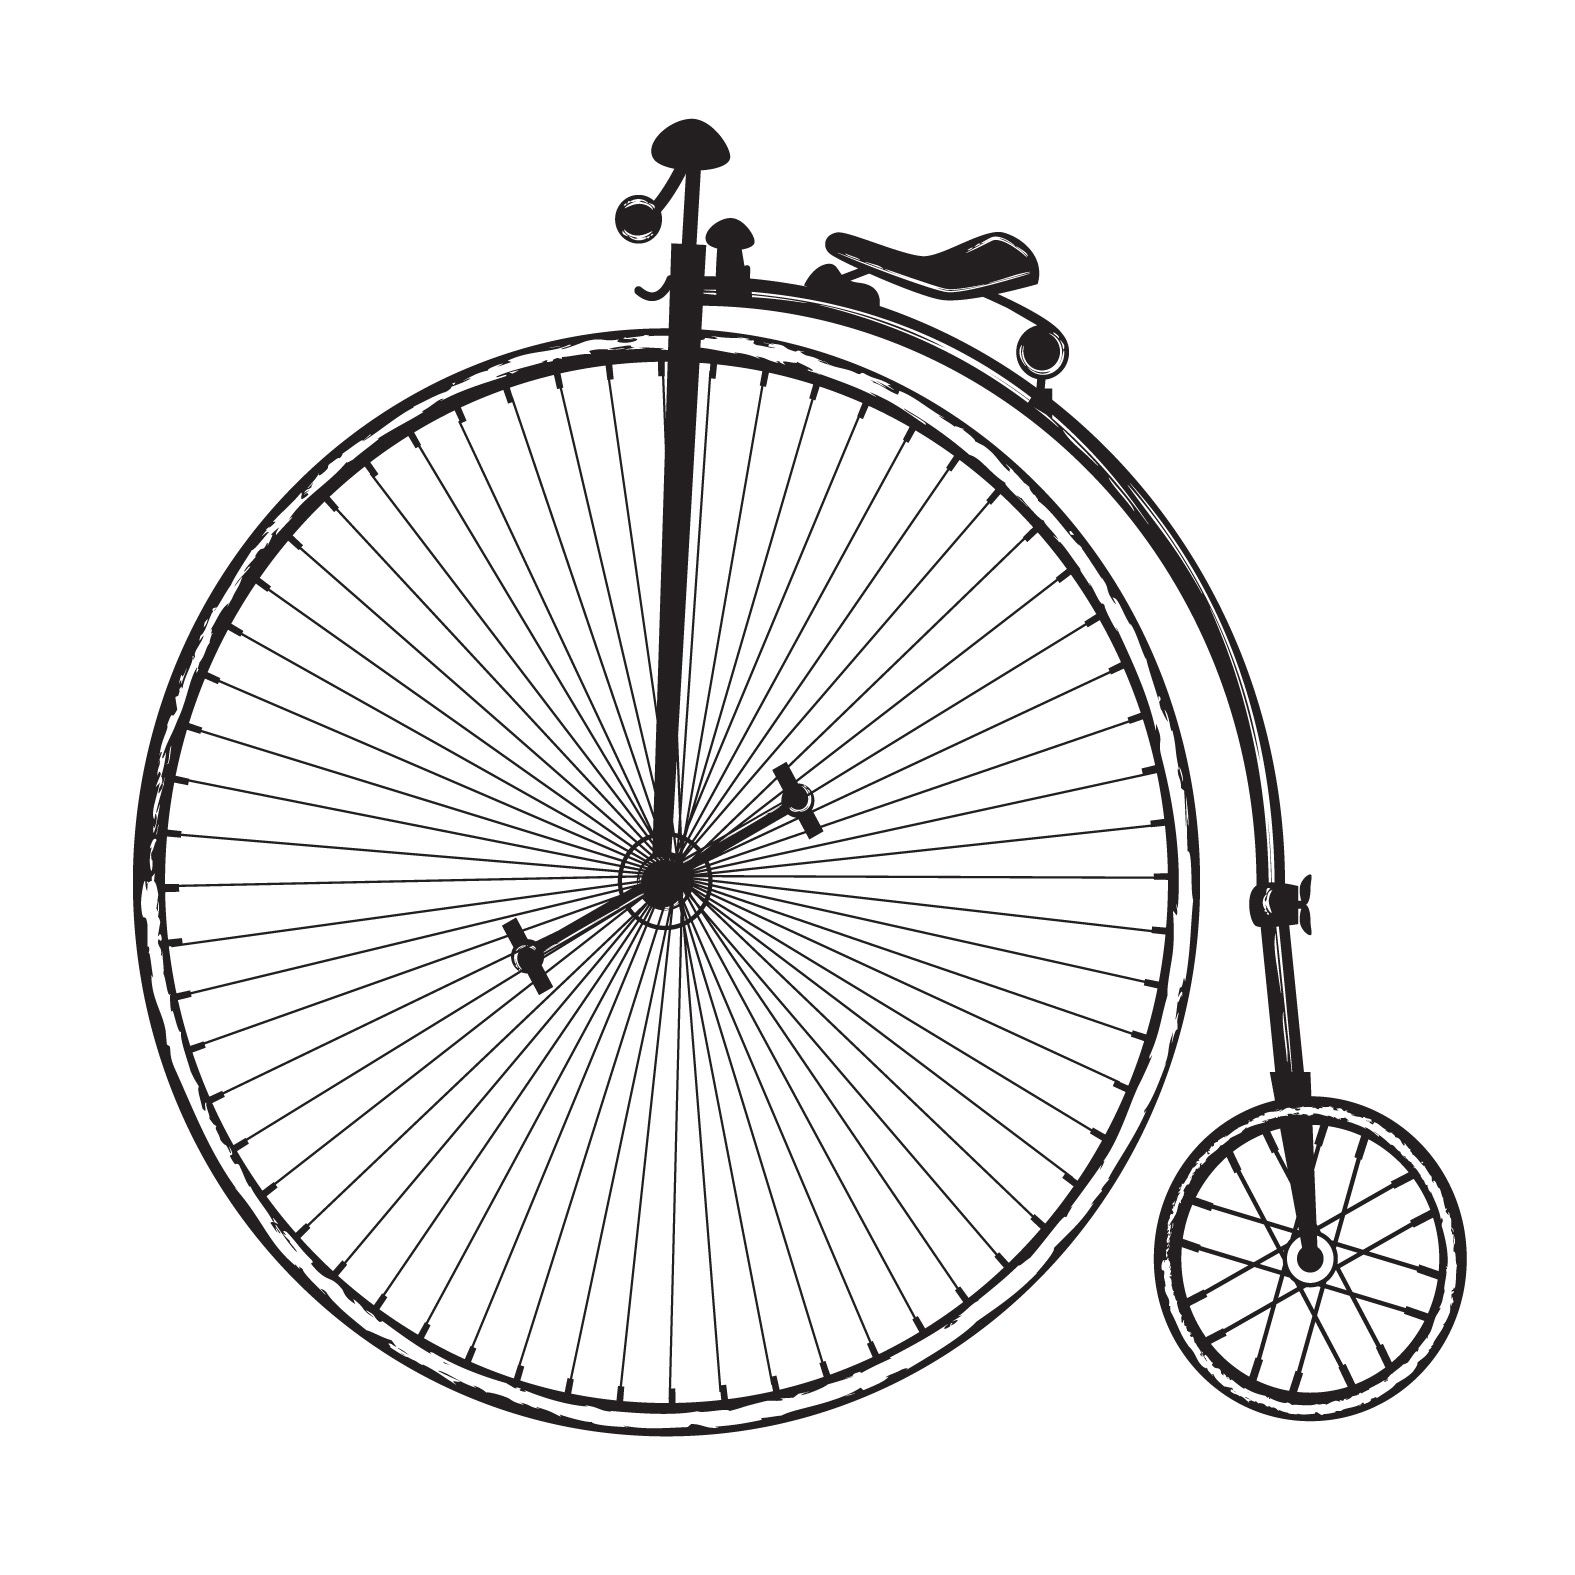 Free vintage clip art images: Vintage old fashioned bicycle.